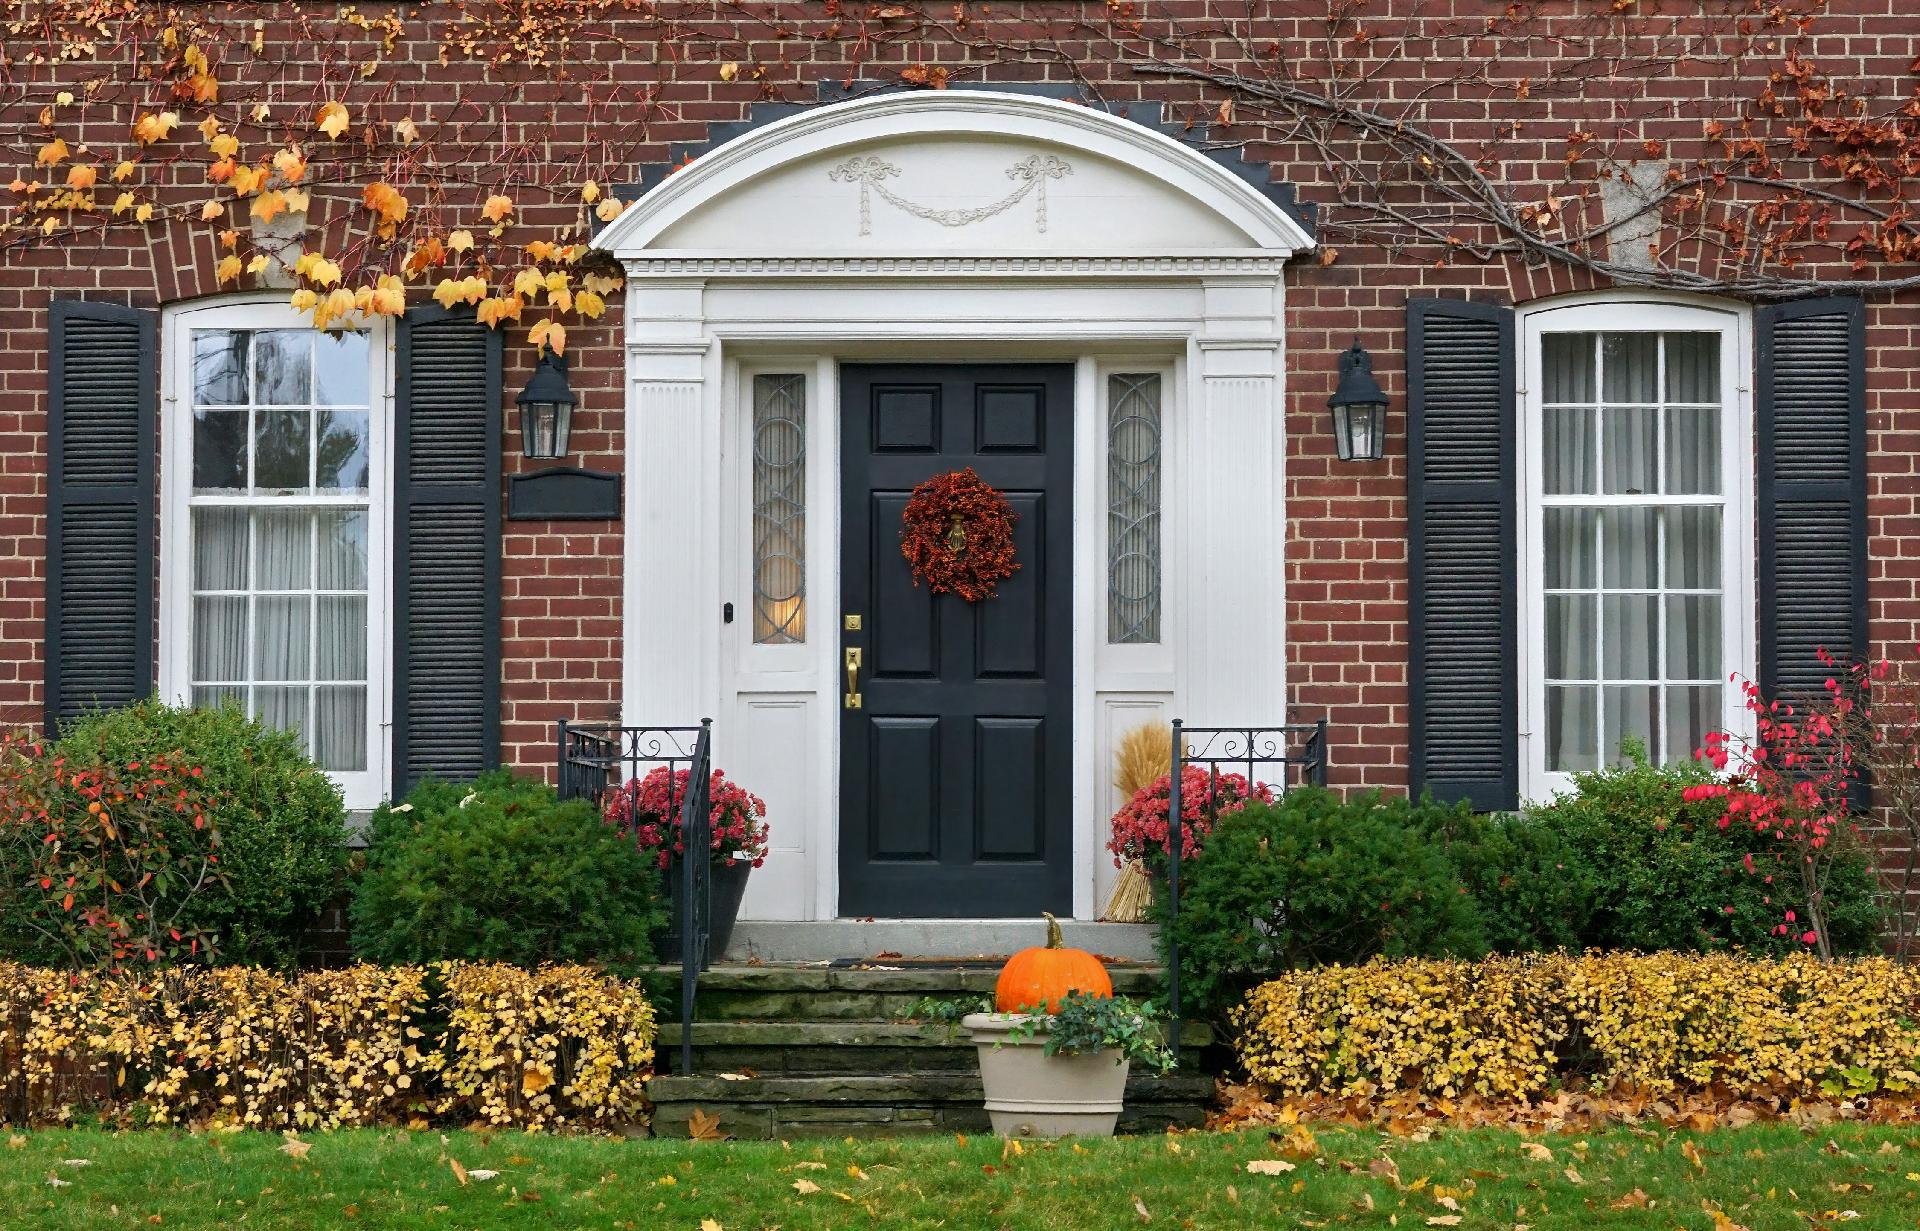 List your house in fall? Picture